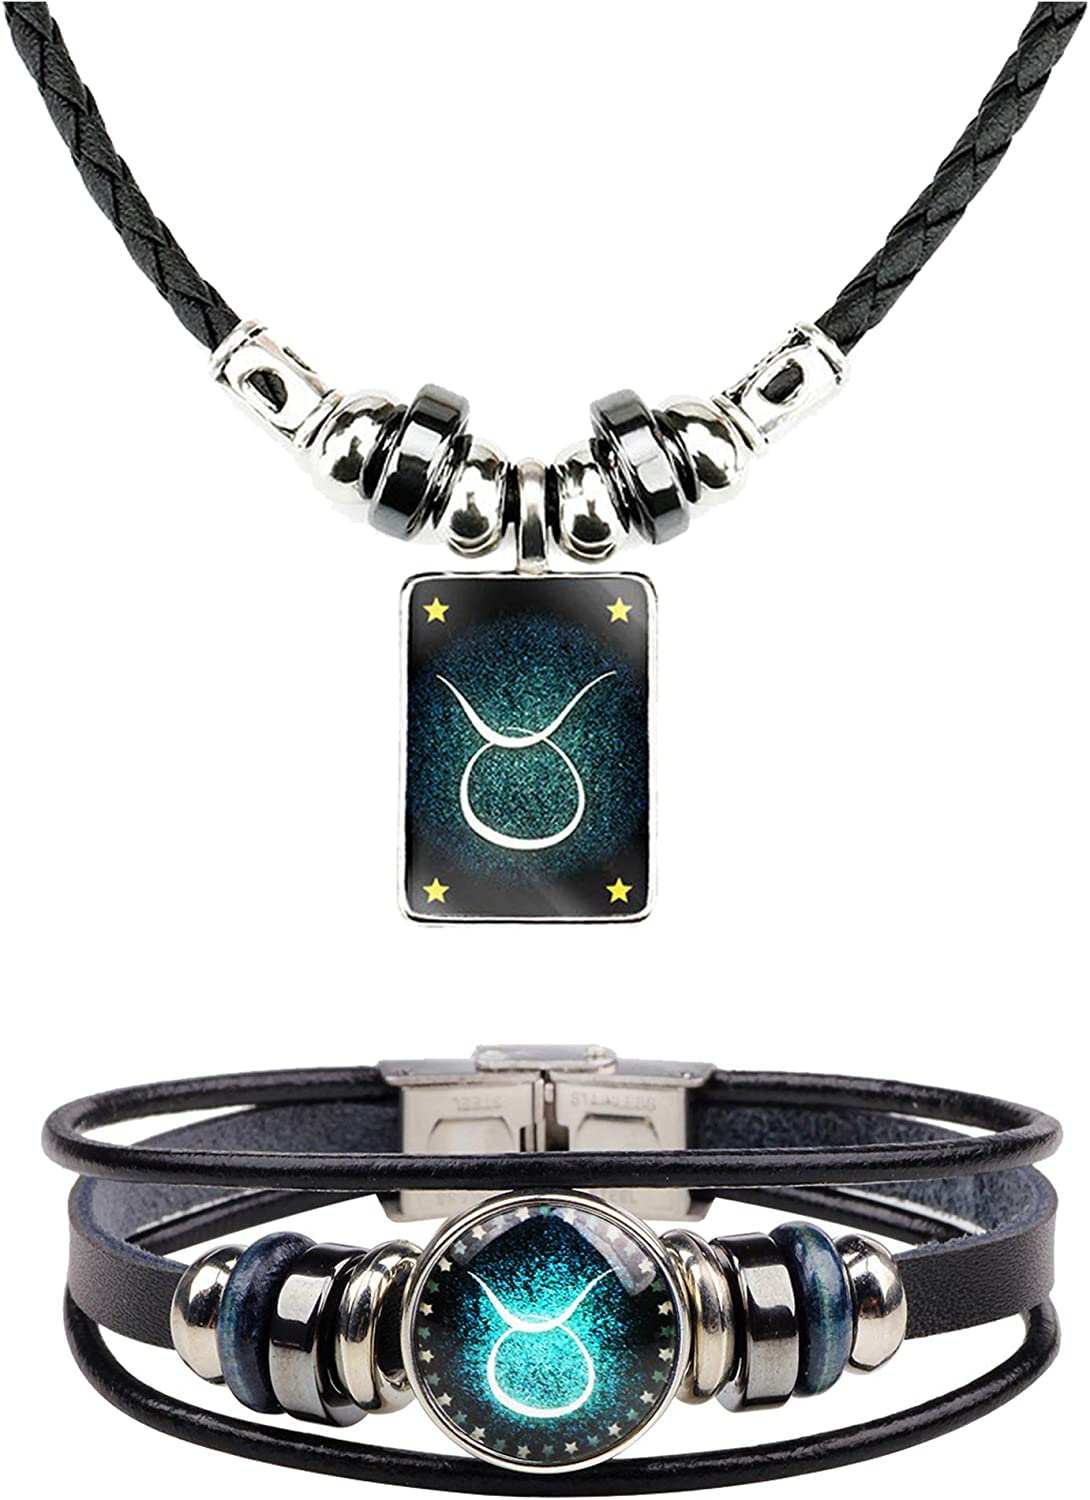 2Pcs Zodiac Necklace Online limited product Bracelet Set Sign Le Ranking integrated 1st place for Jewelry Men